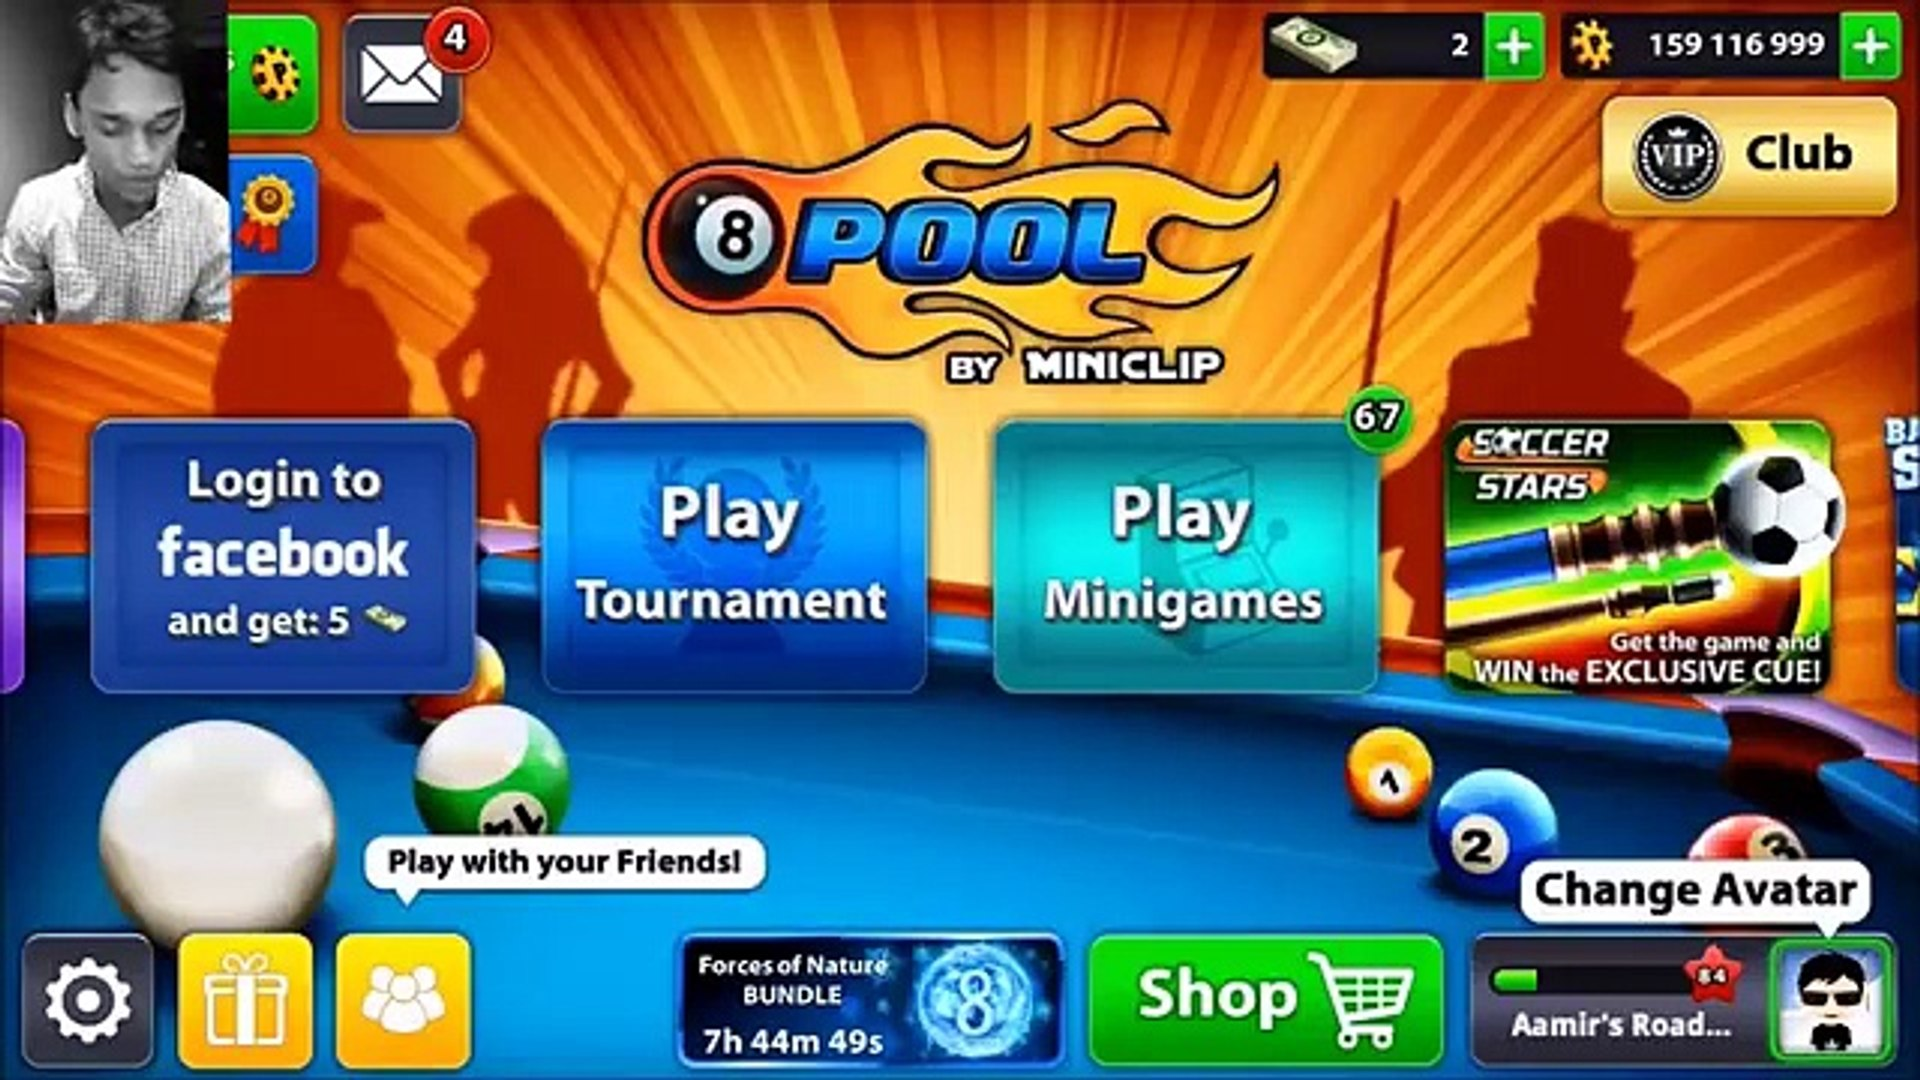 8 Ball Pool Cheats Android 2018 how to win 100 million coins in 8 ball pool - back to back wins